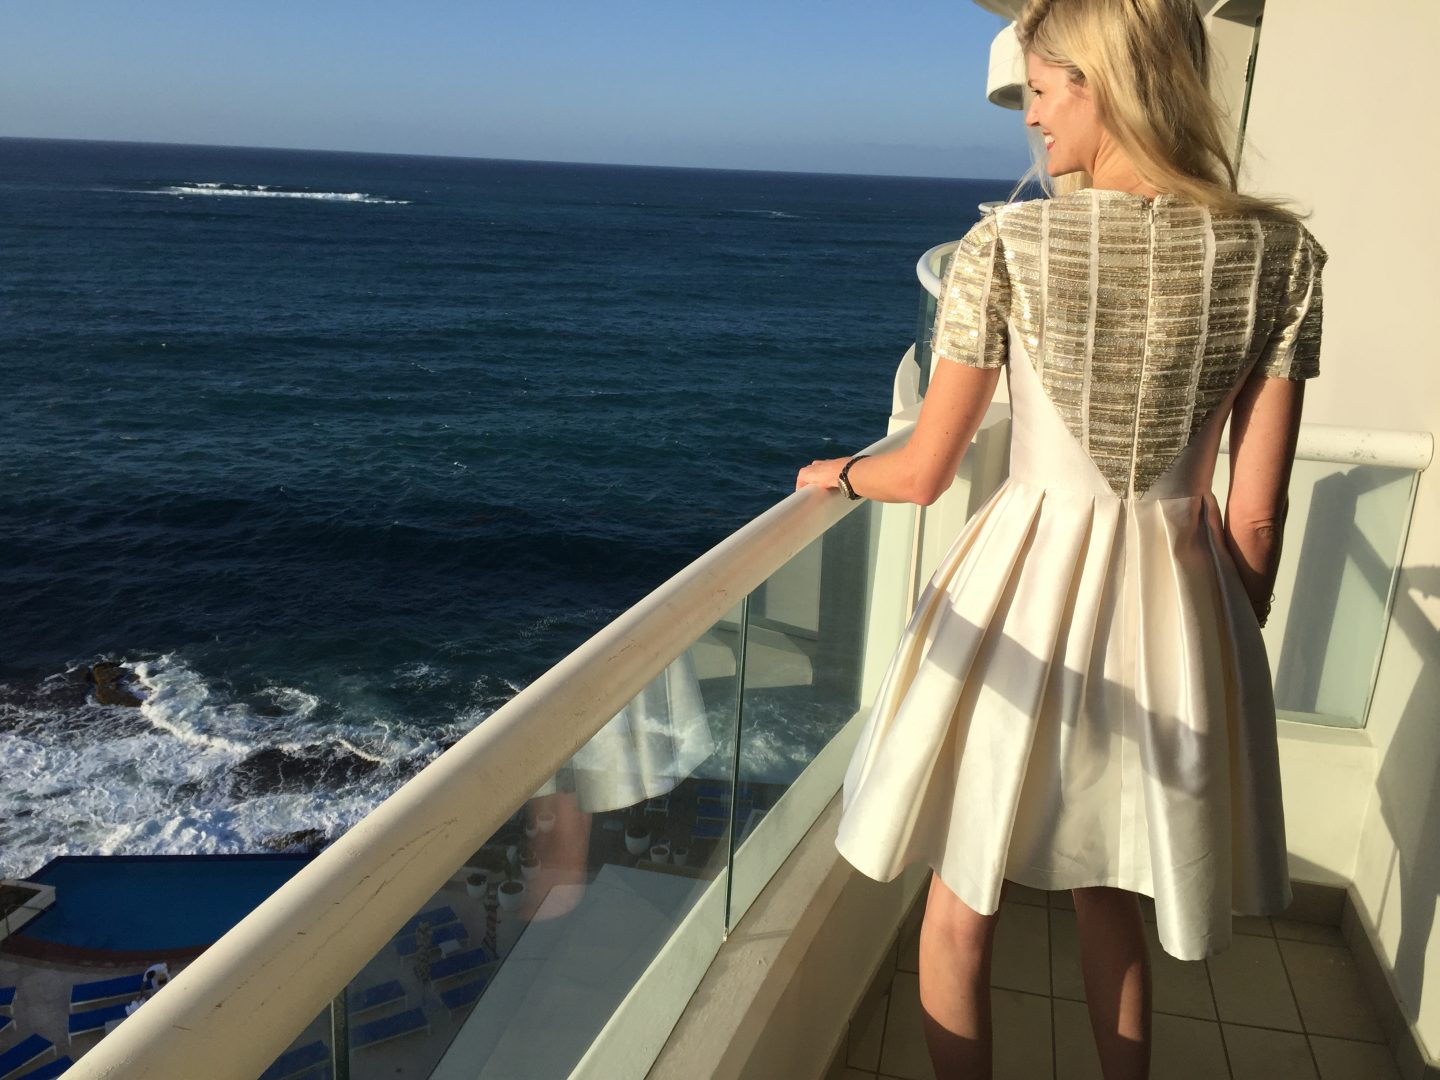 Blonde hair, gold sparkling cocktail dress on a glamorous hotel balcony overlooking the ocean